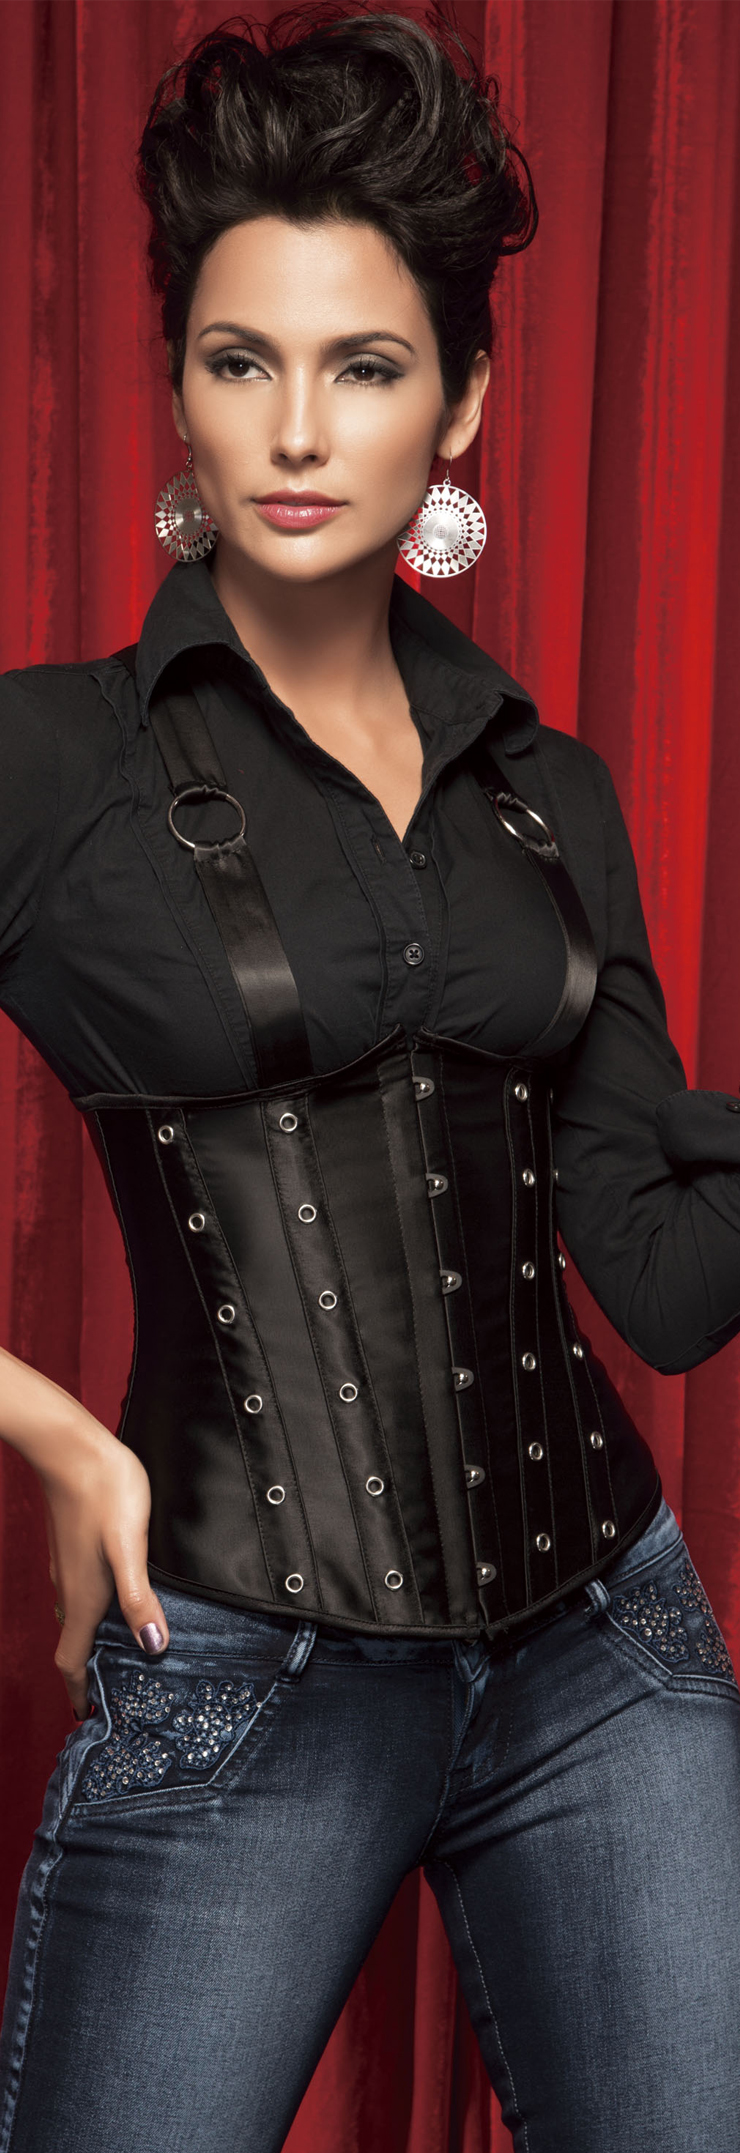 Wholesale Black Suspenders Underbust Corset UNC552